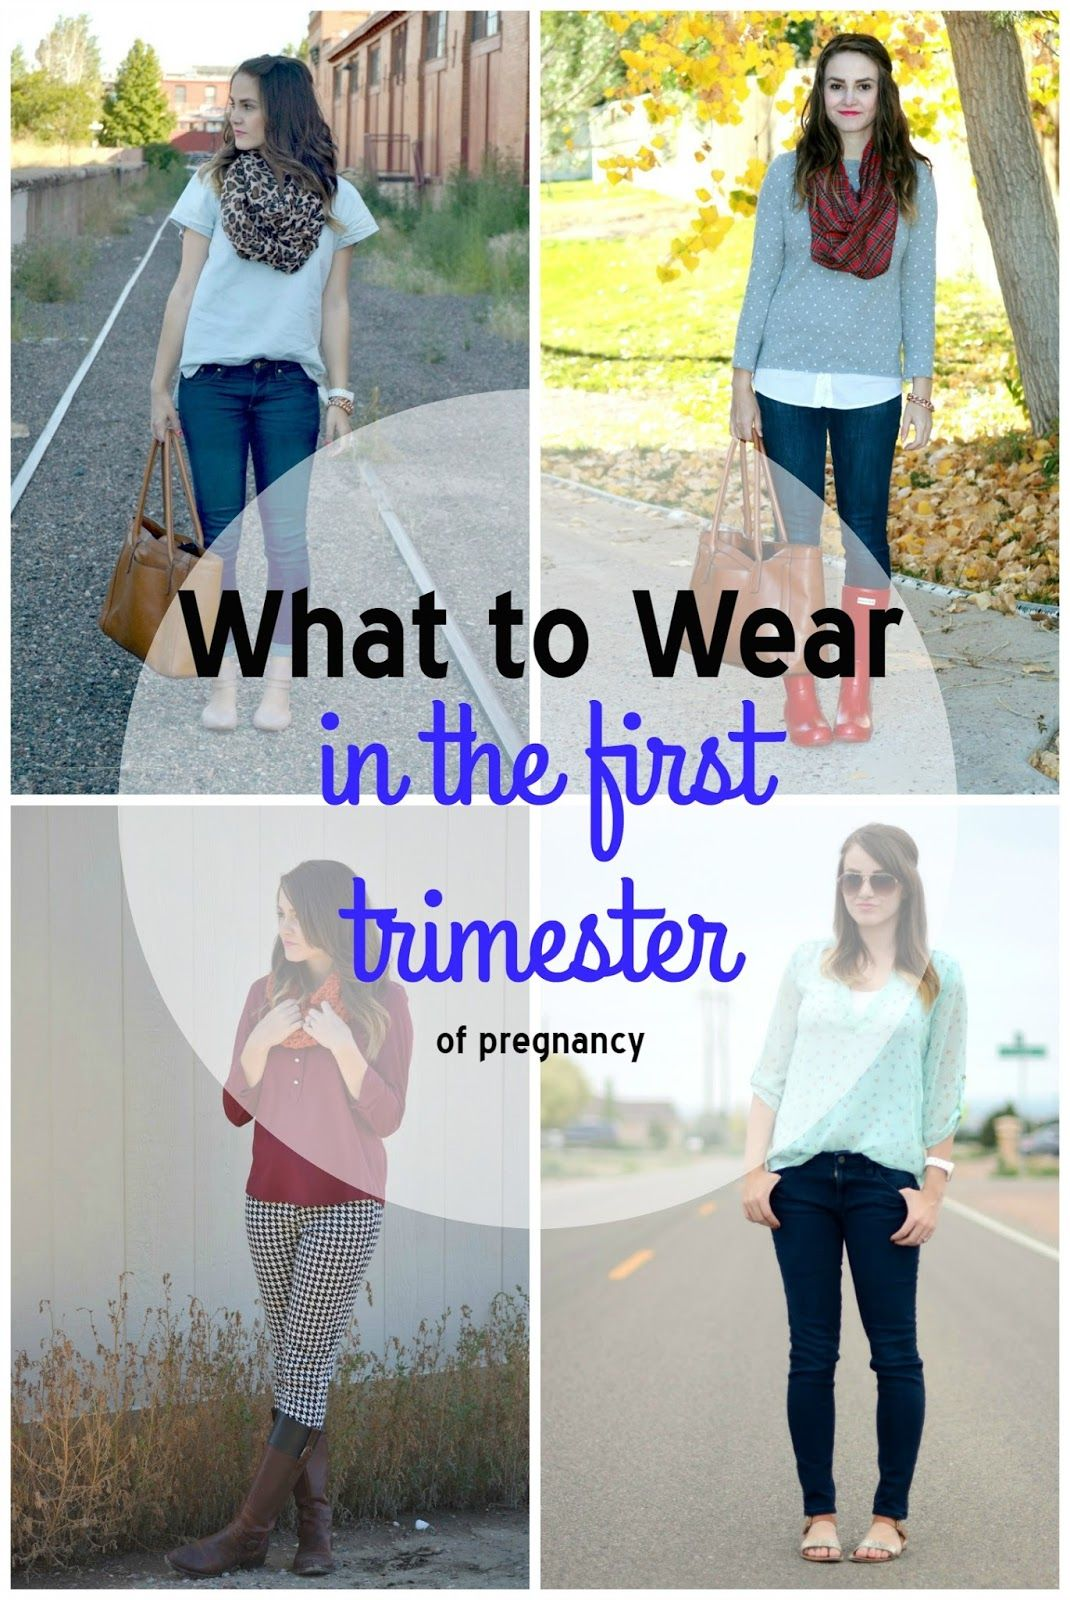 dd548d3d5c39ed First trimester fashion | Outfit ideas | First trimester fashion ...